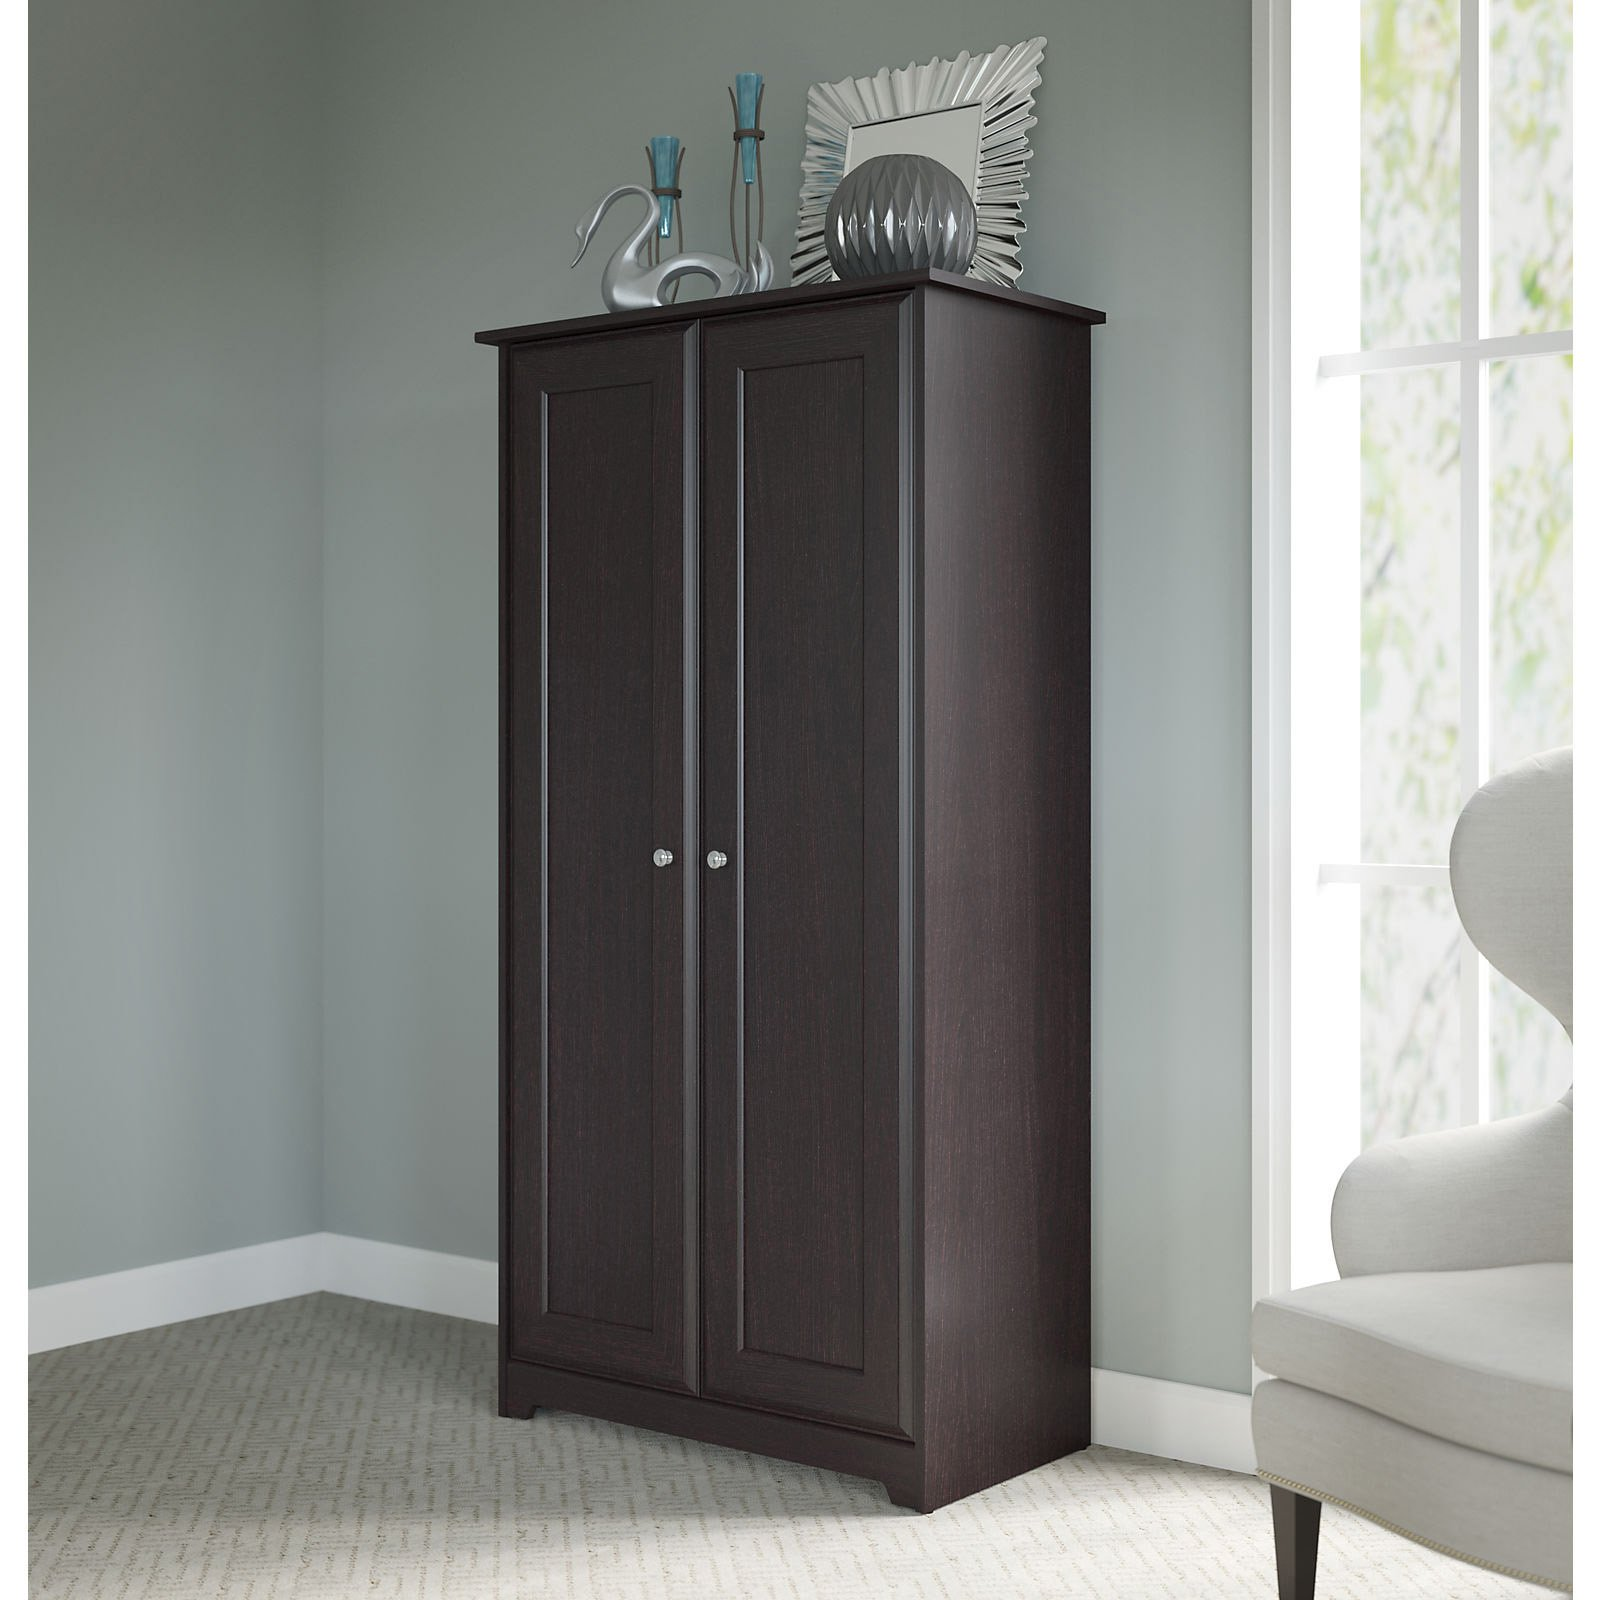 storage furniture bush furniture cabot tall storage cabinet with doors in